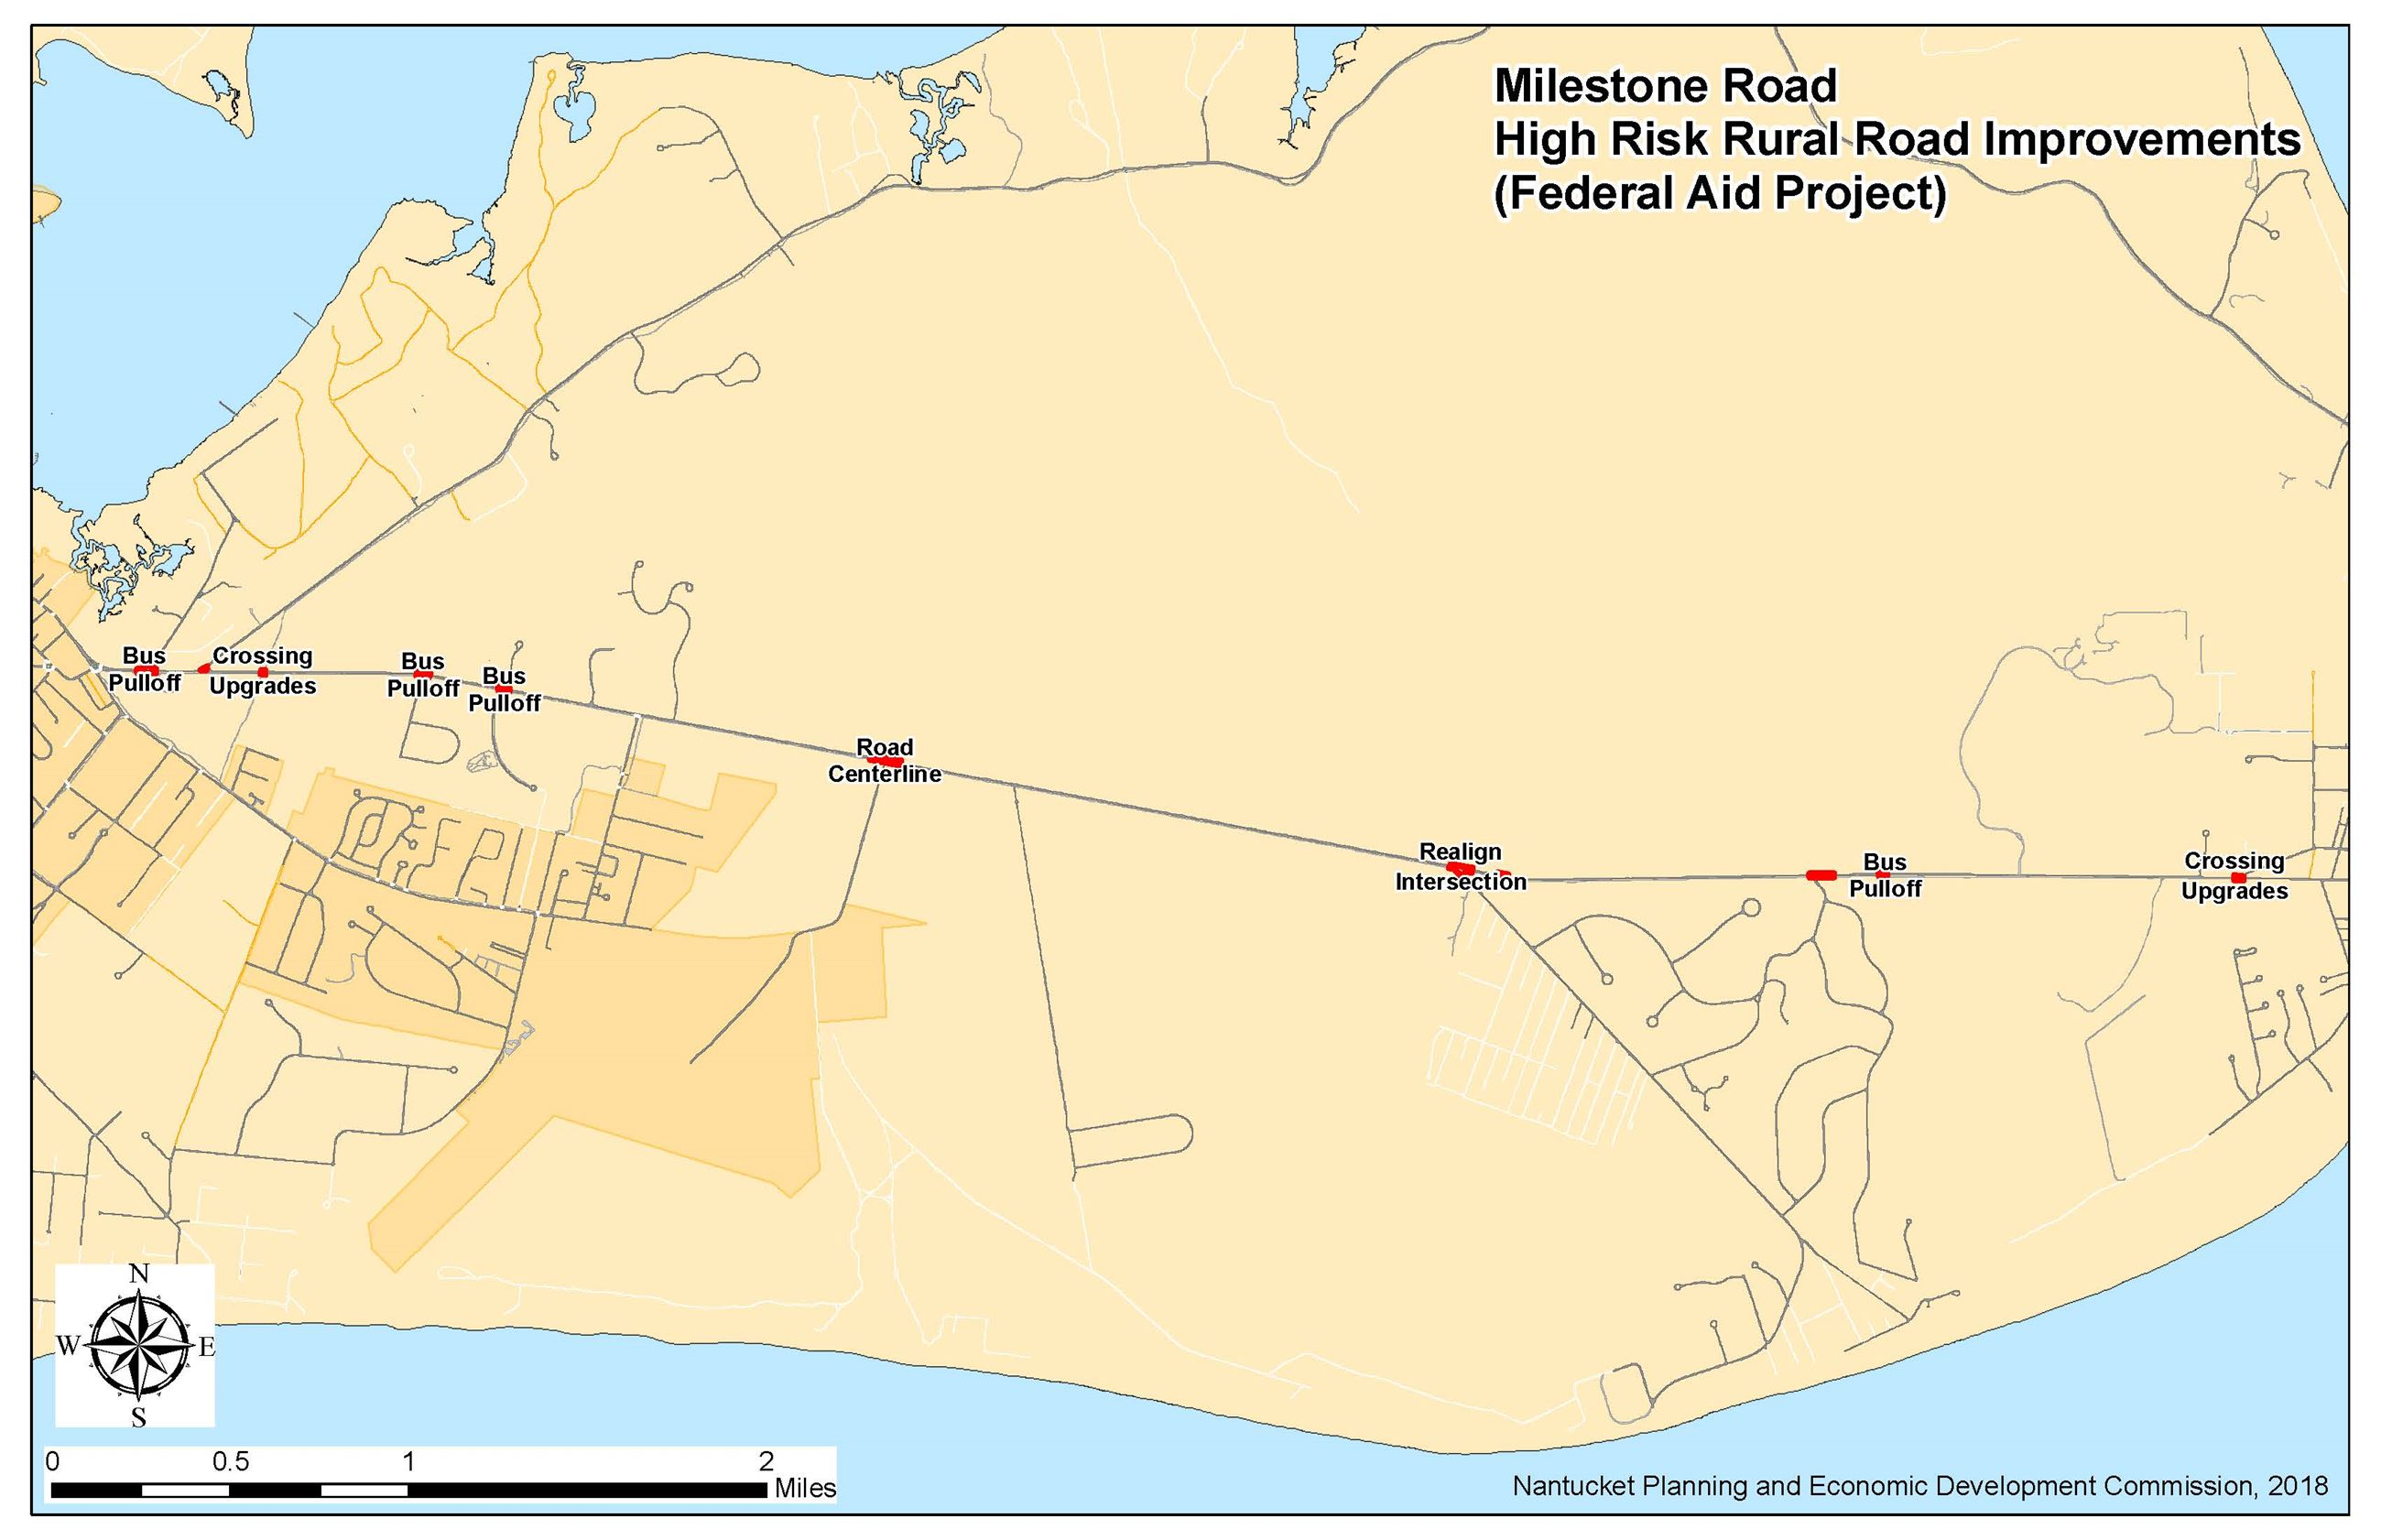 Milestone Rd HRRR Project map